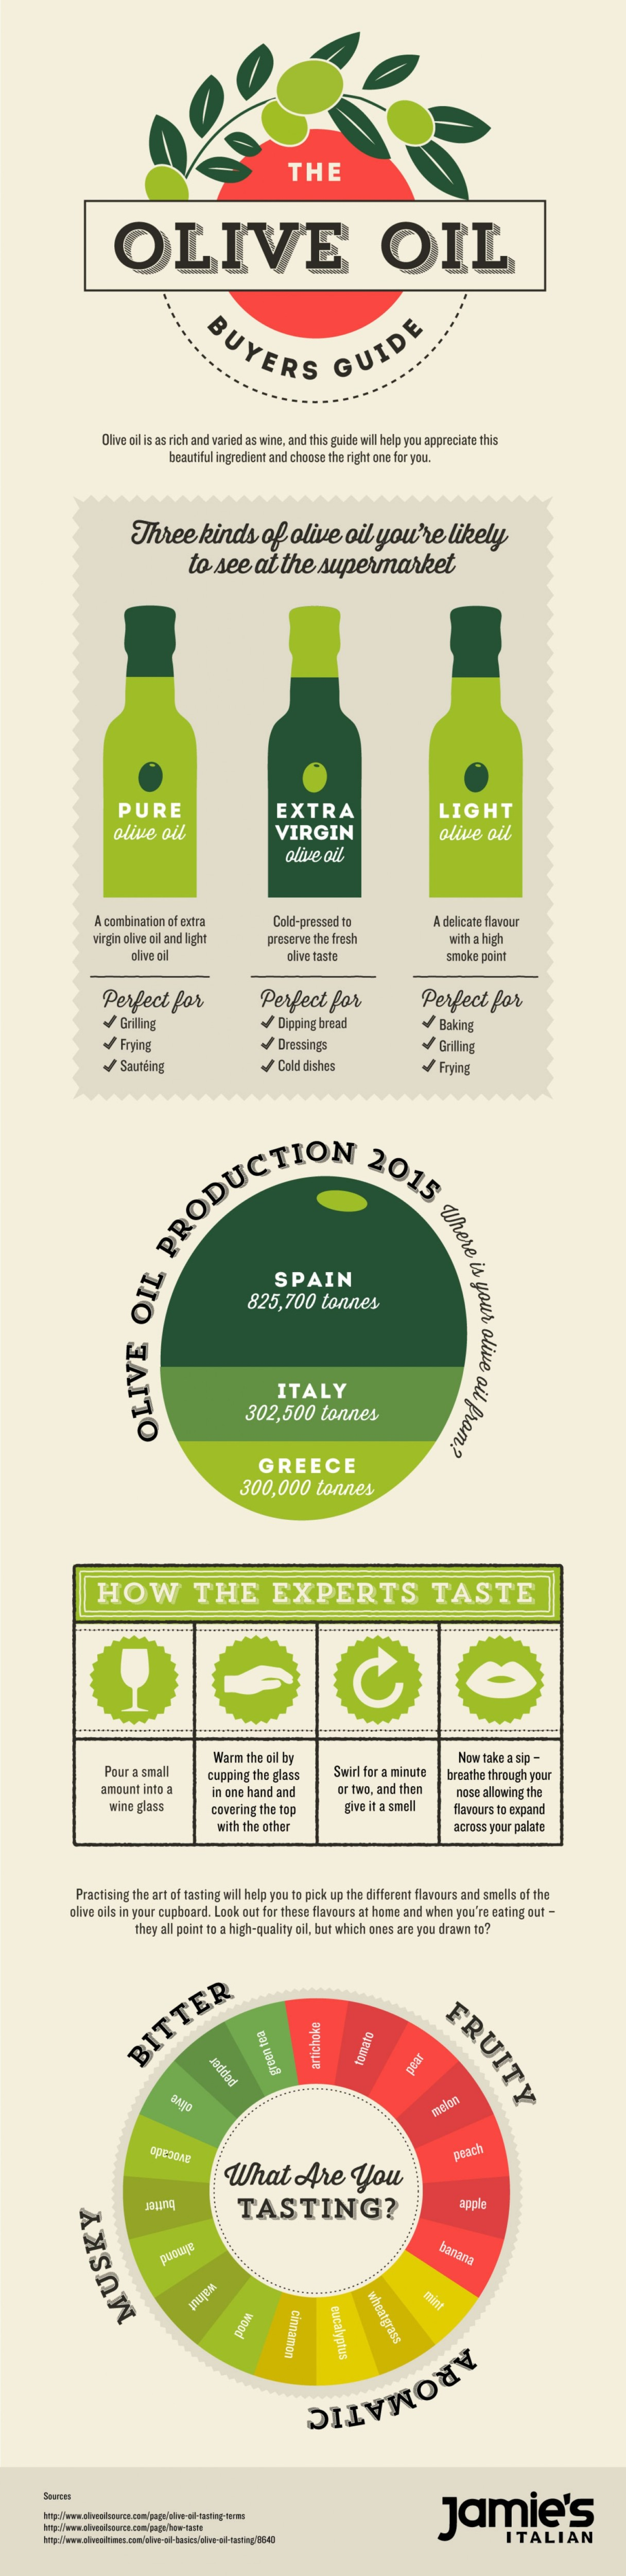 jamies-italian-olive-oil-buyers-guide_57320f2dda035_w1500